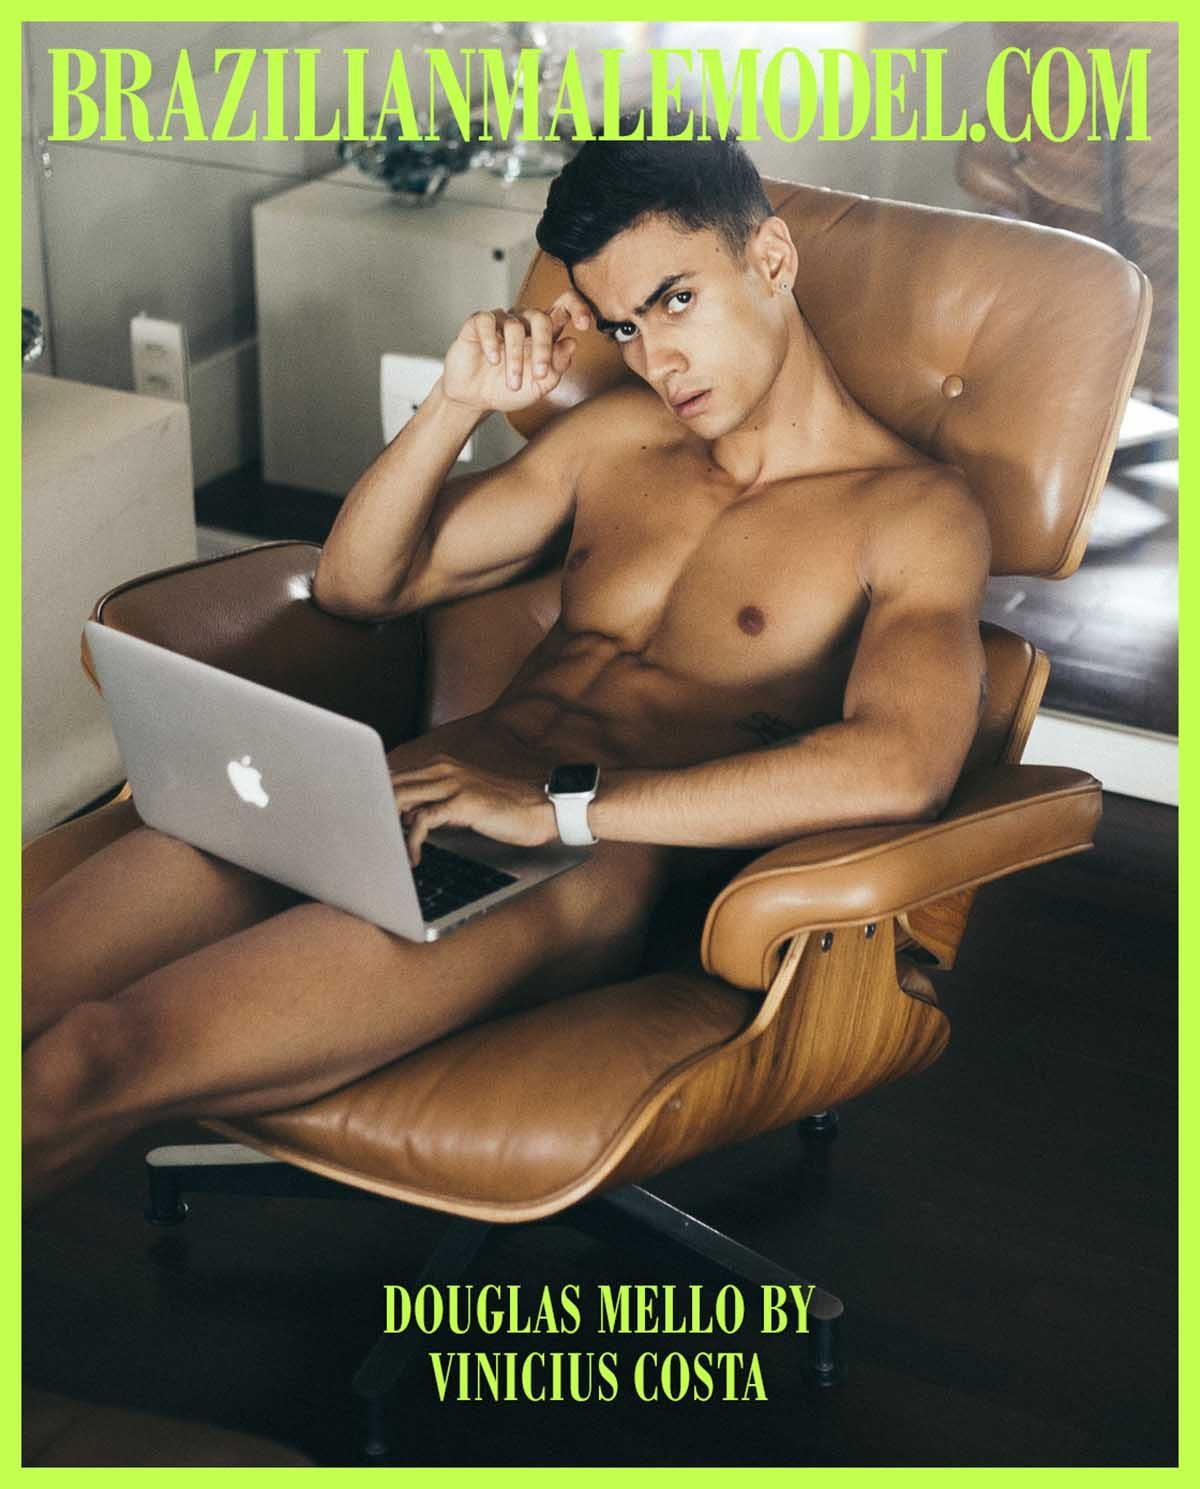 Douglas Mello by Vinicius Costa